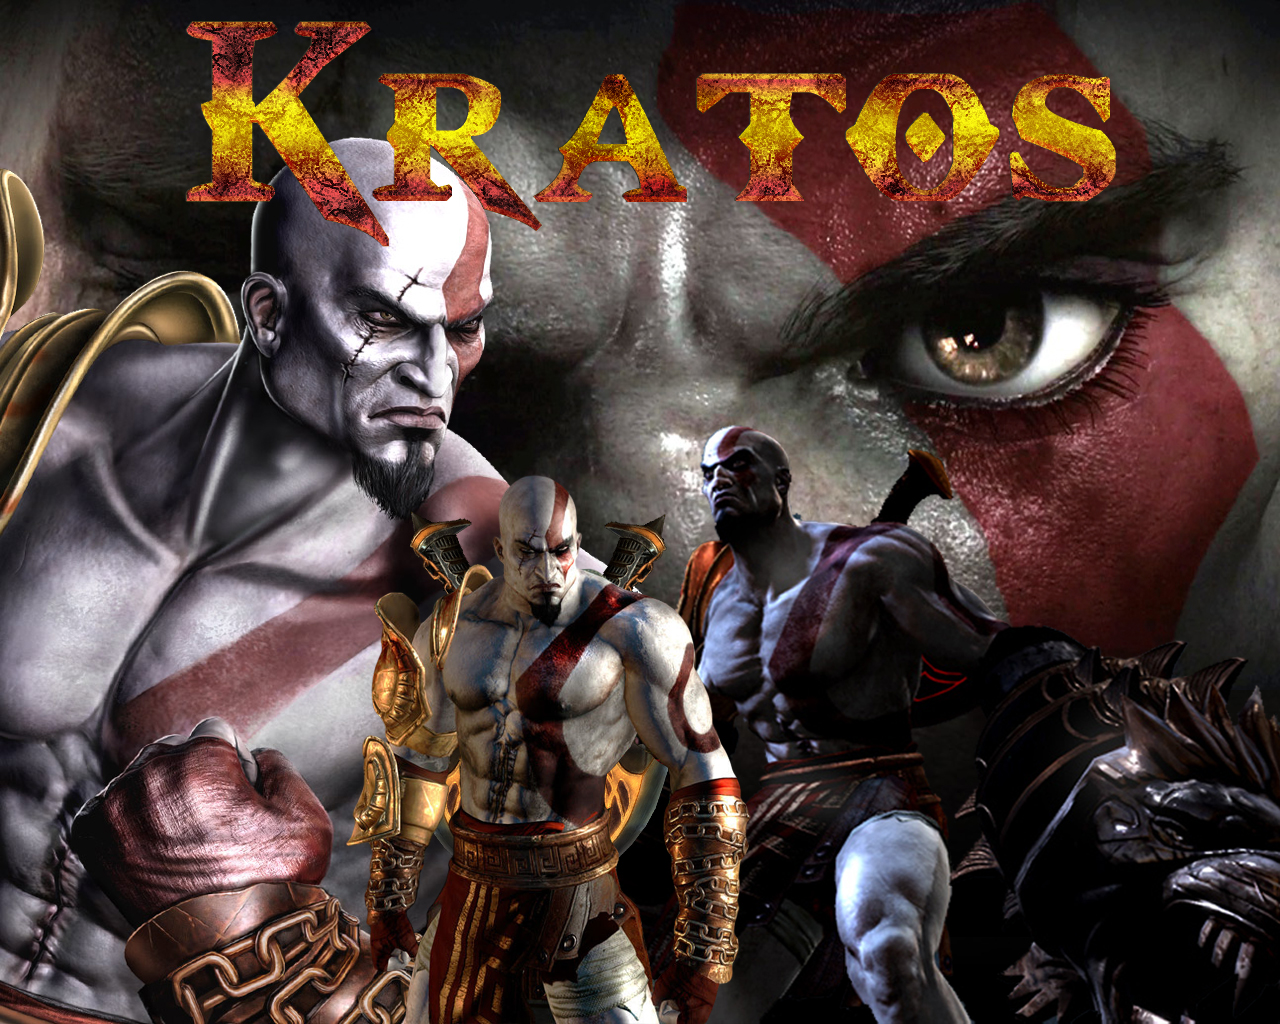 God of war 3 Kratos Wallpaper by Rodrigovg3 on deviantART